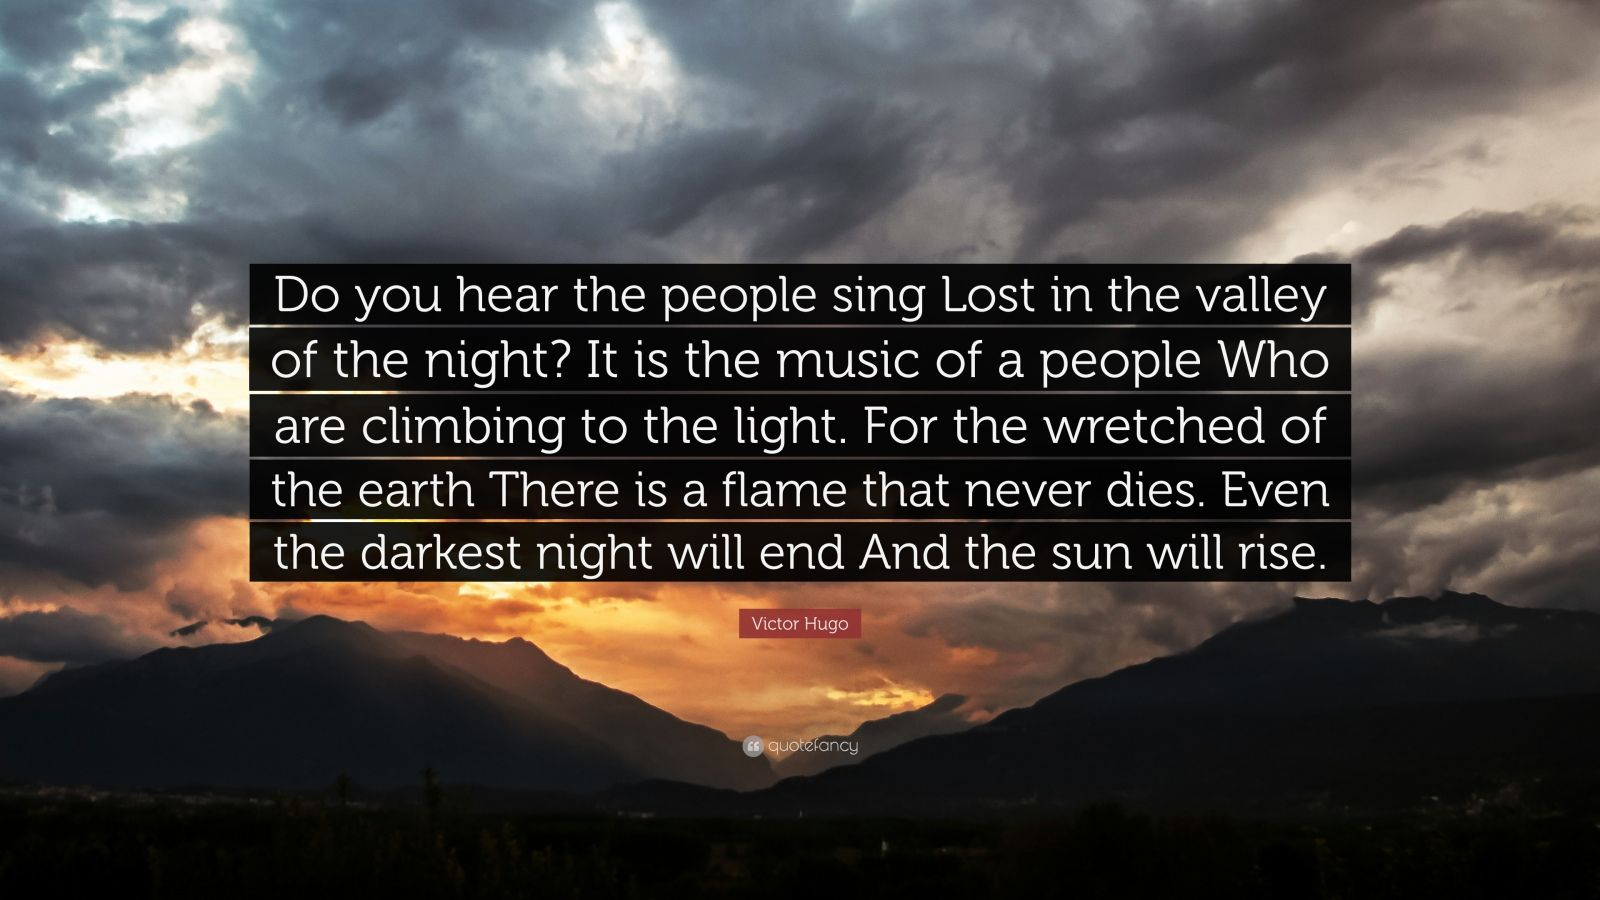 "Victor Hugo Quote: ""Do you hear the people sing Lost in the valley of the night? It is the music of a people Who are climbing to the light. For the wretched of the earth There is a flame that never dies. Even the darkest night will end And the sun will rise."""